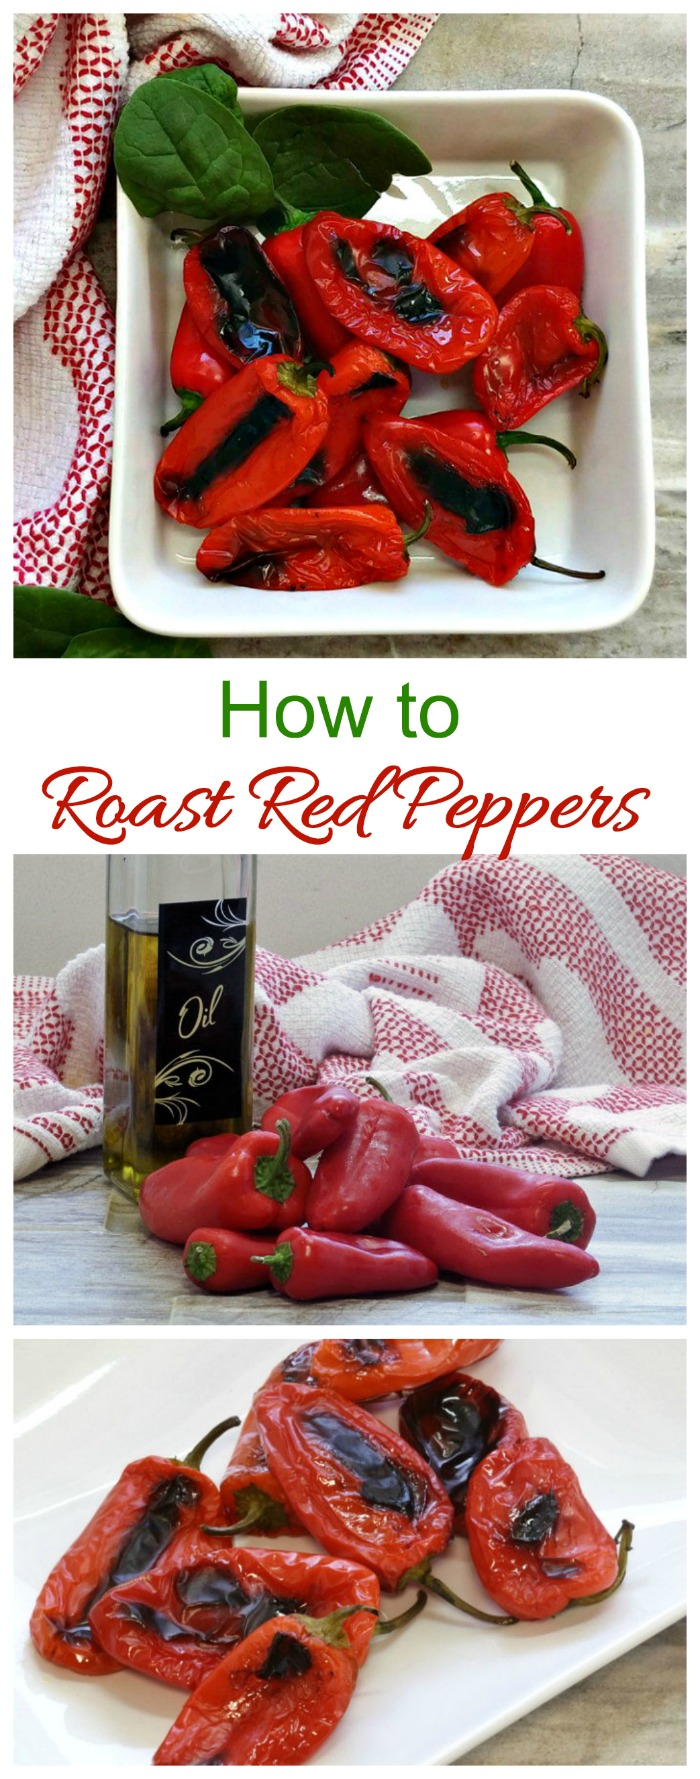 How to roast red peppers in the oven. It's e lot easier than you might think!